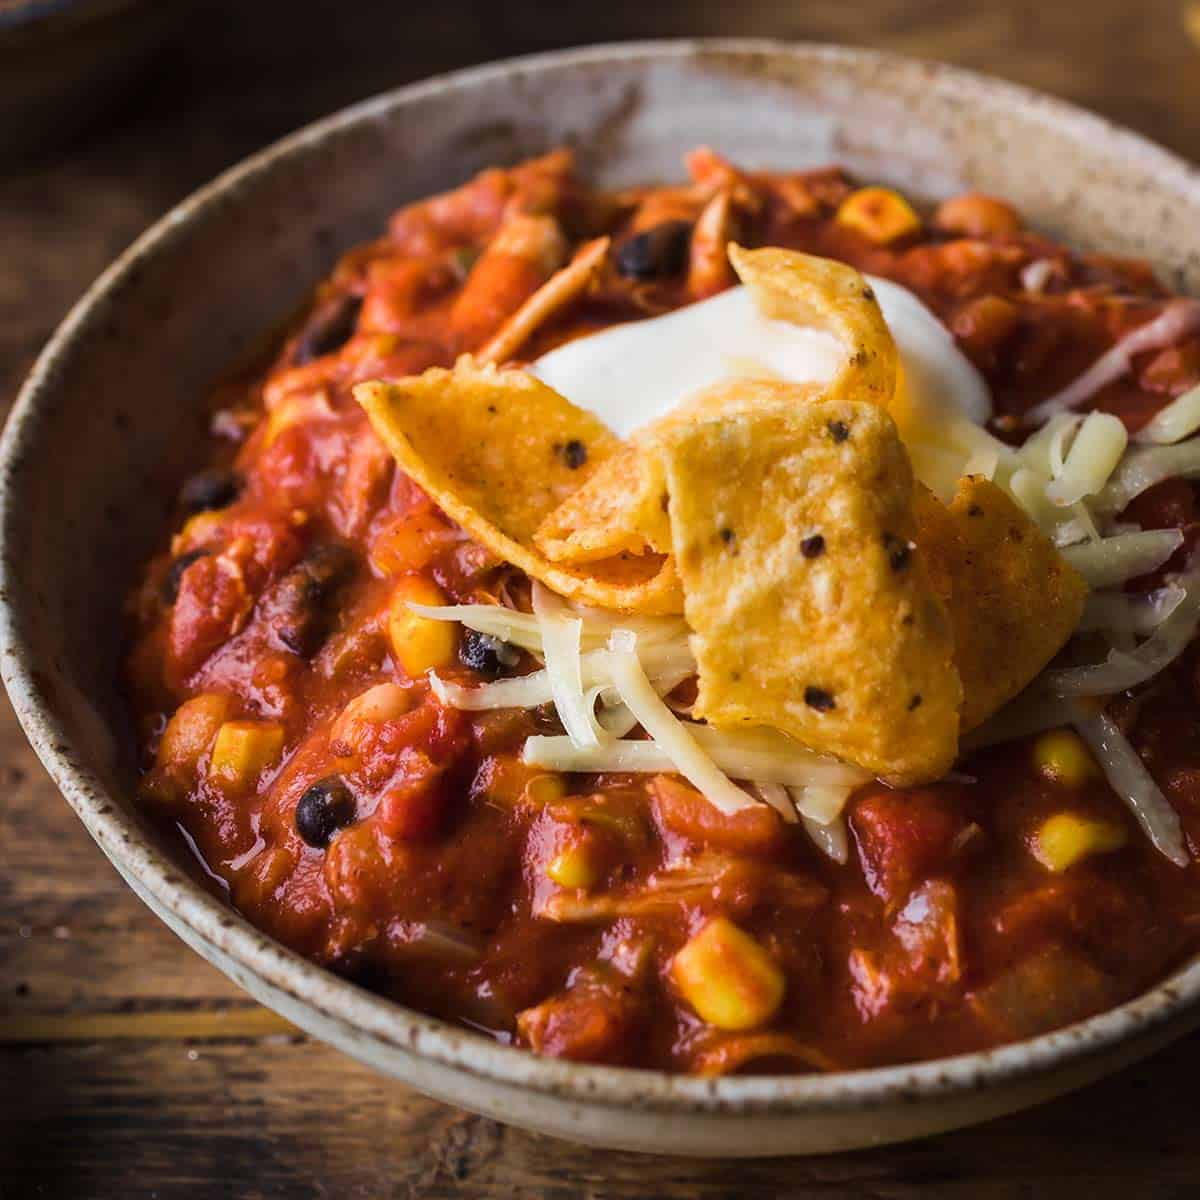 Chicken chili in a gray bowl with Frito chips on top